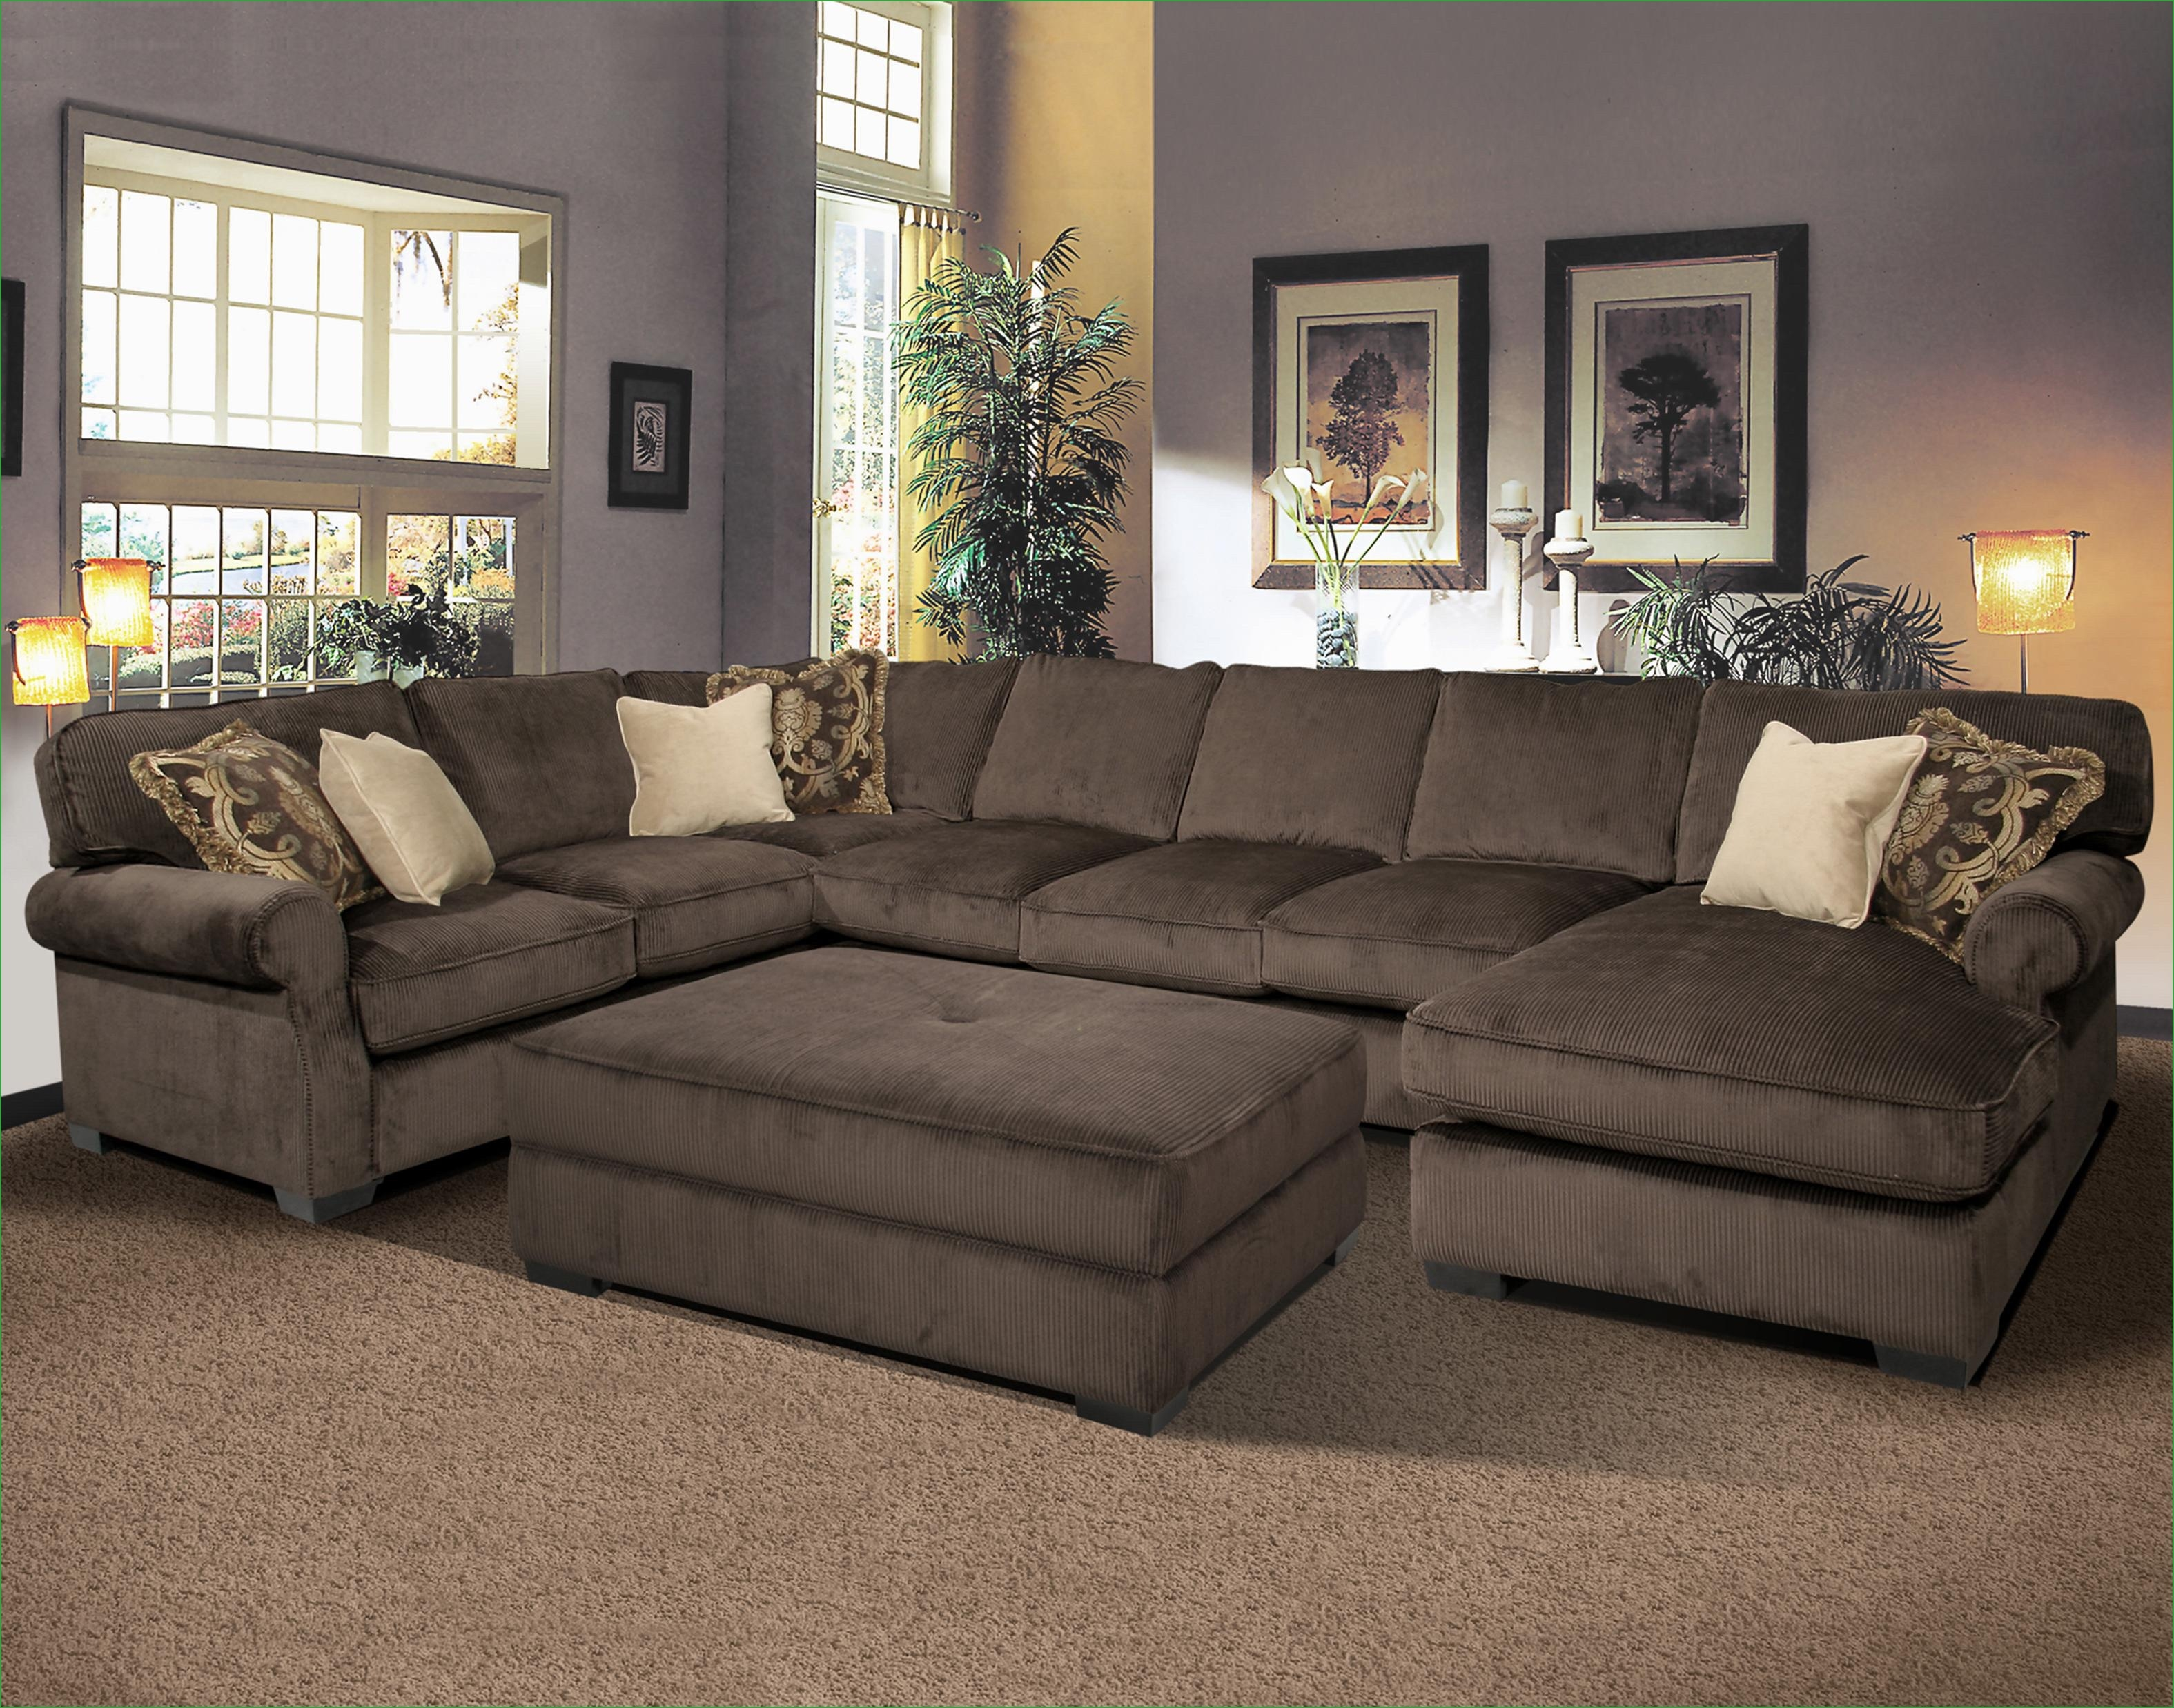 Bickel Reversible Chaise Sectional Bentley Leather Sectional Intended For Bentley Sectional Leather Sofa (Image 2 of 15)